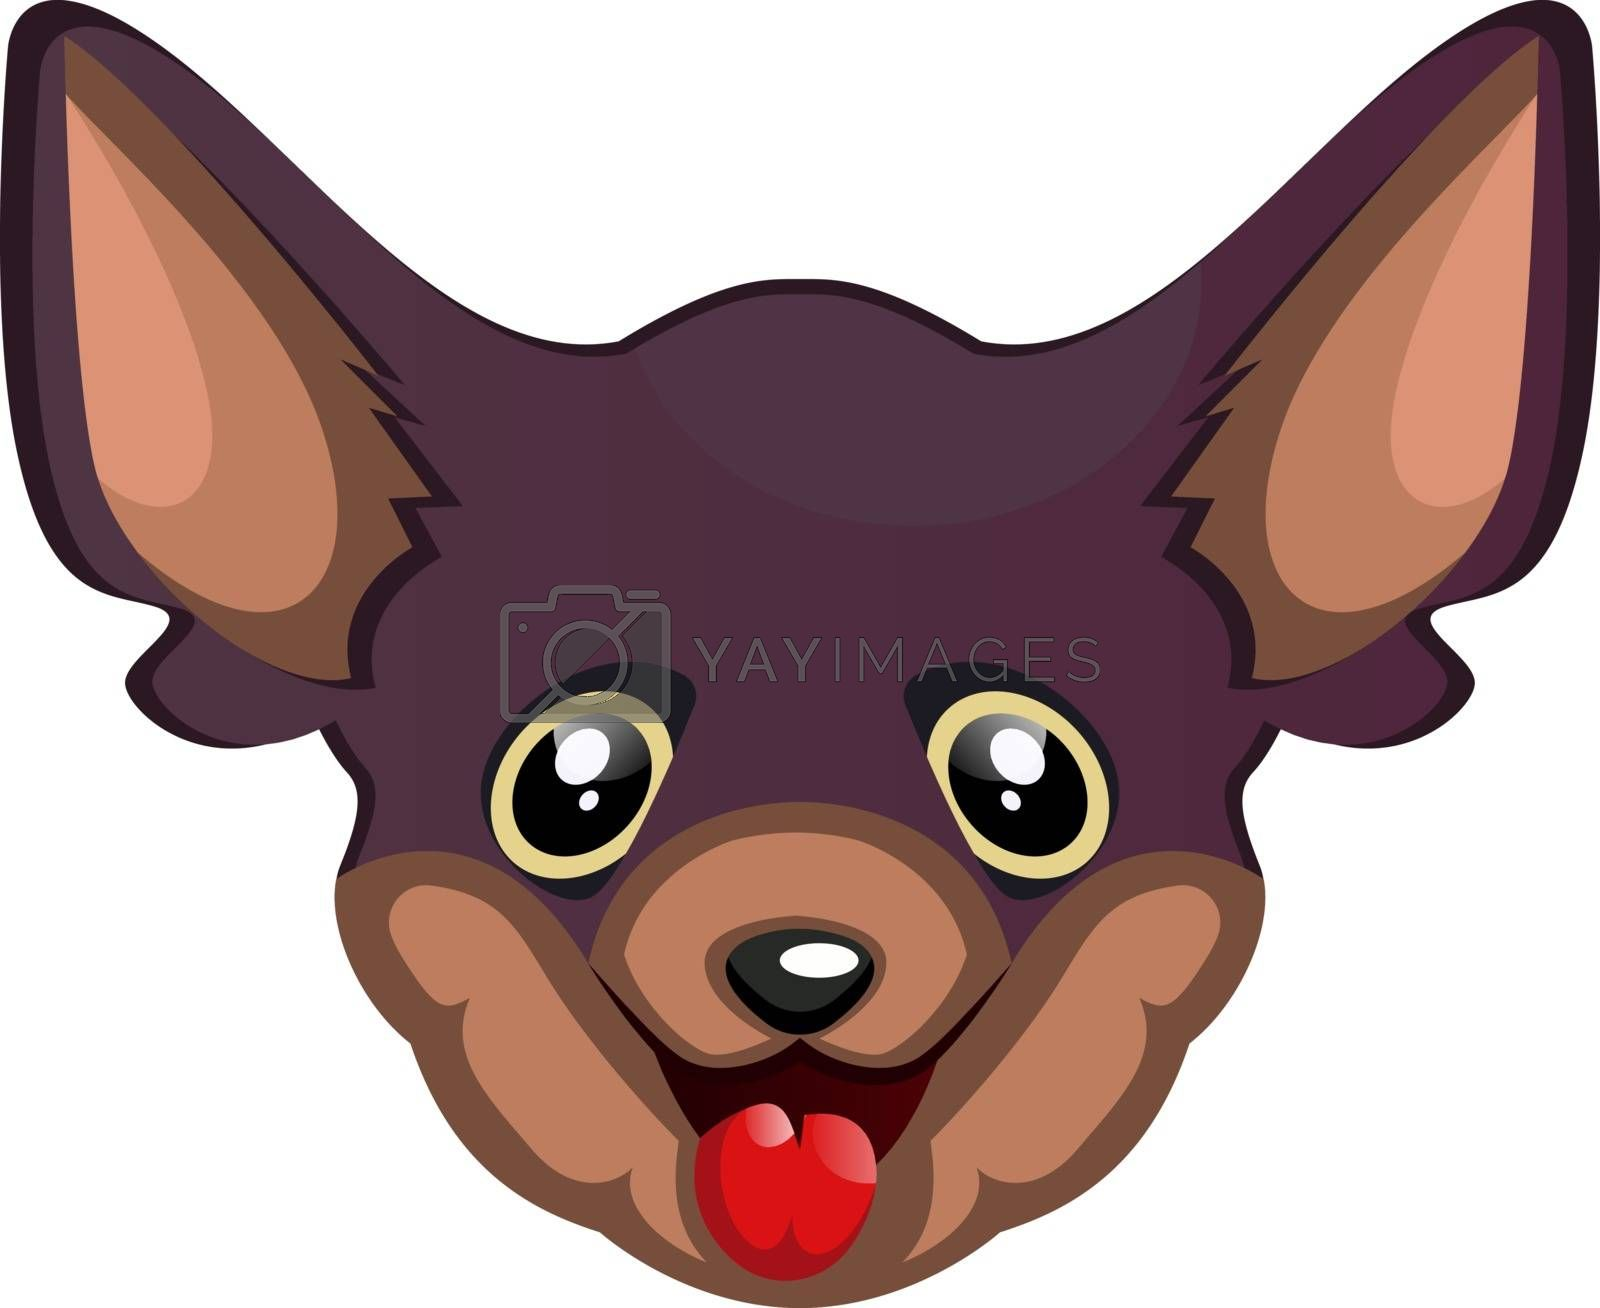 Royalty free image of Silly Chihuahua illustration vector on white background by Morphart